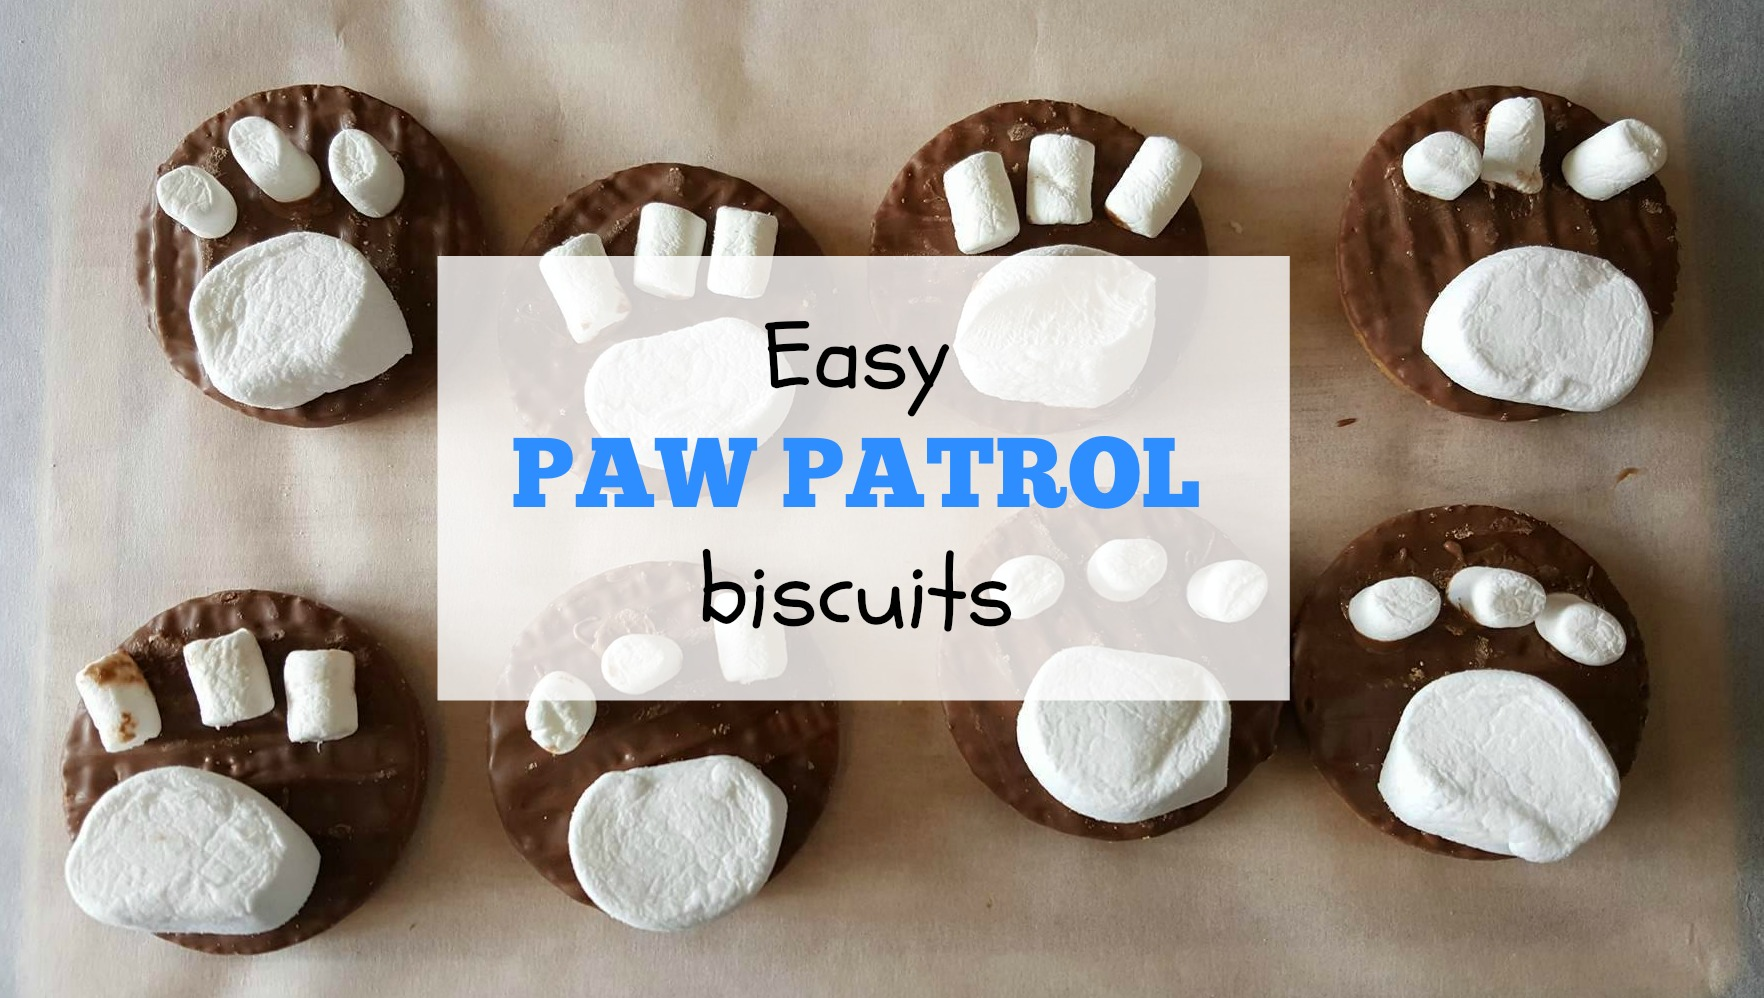 Paw Patrol biscuits